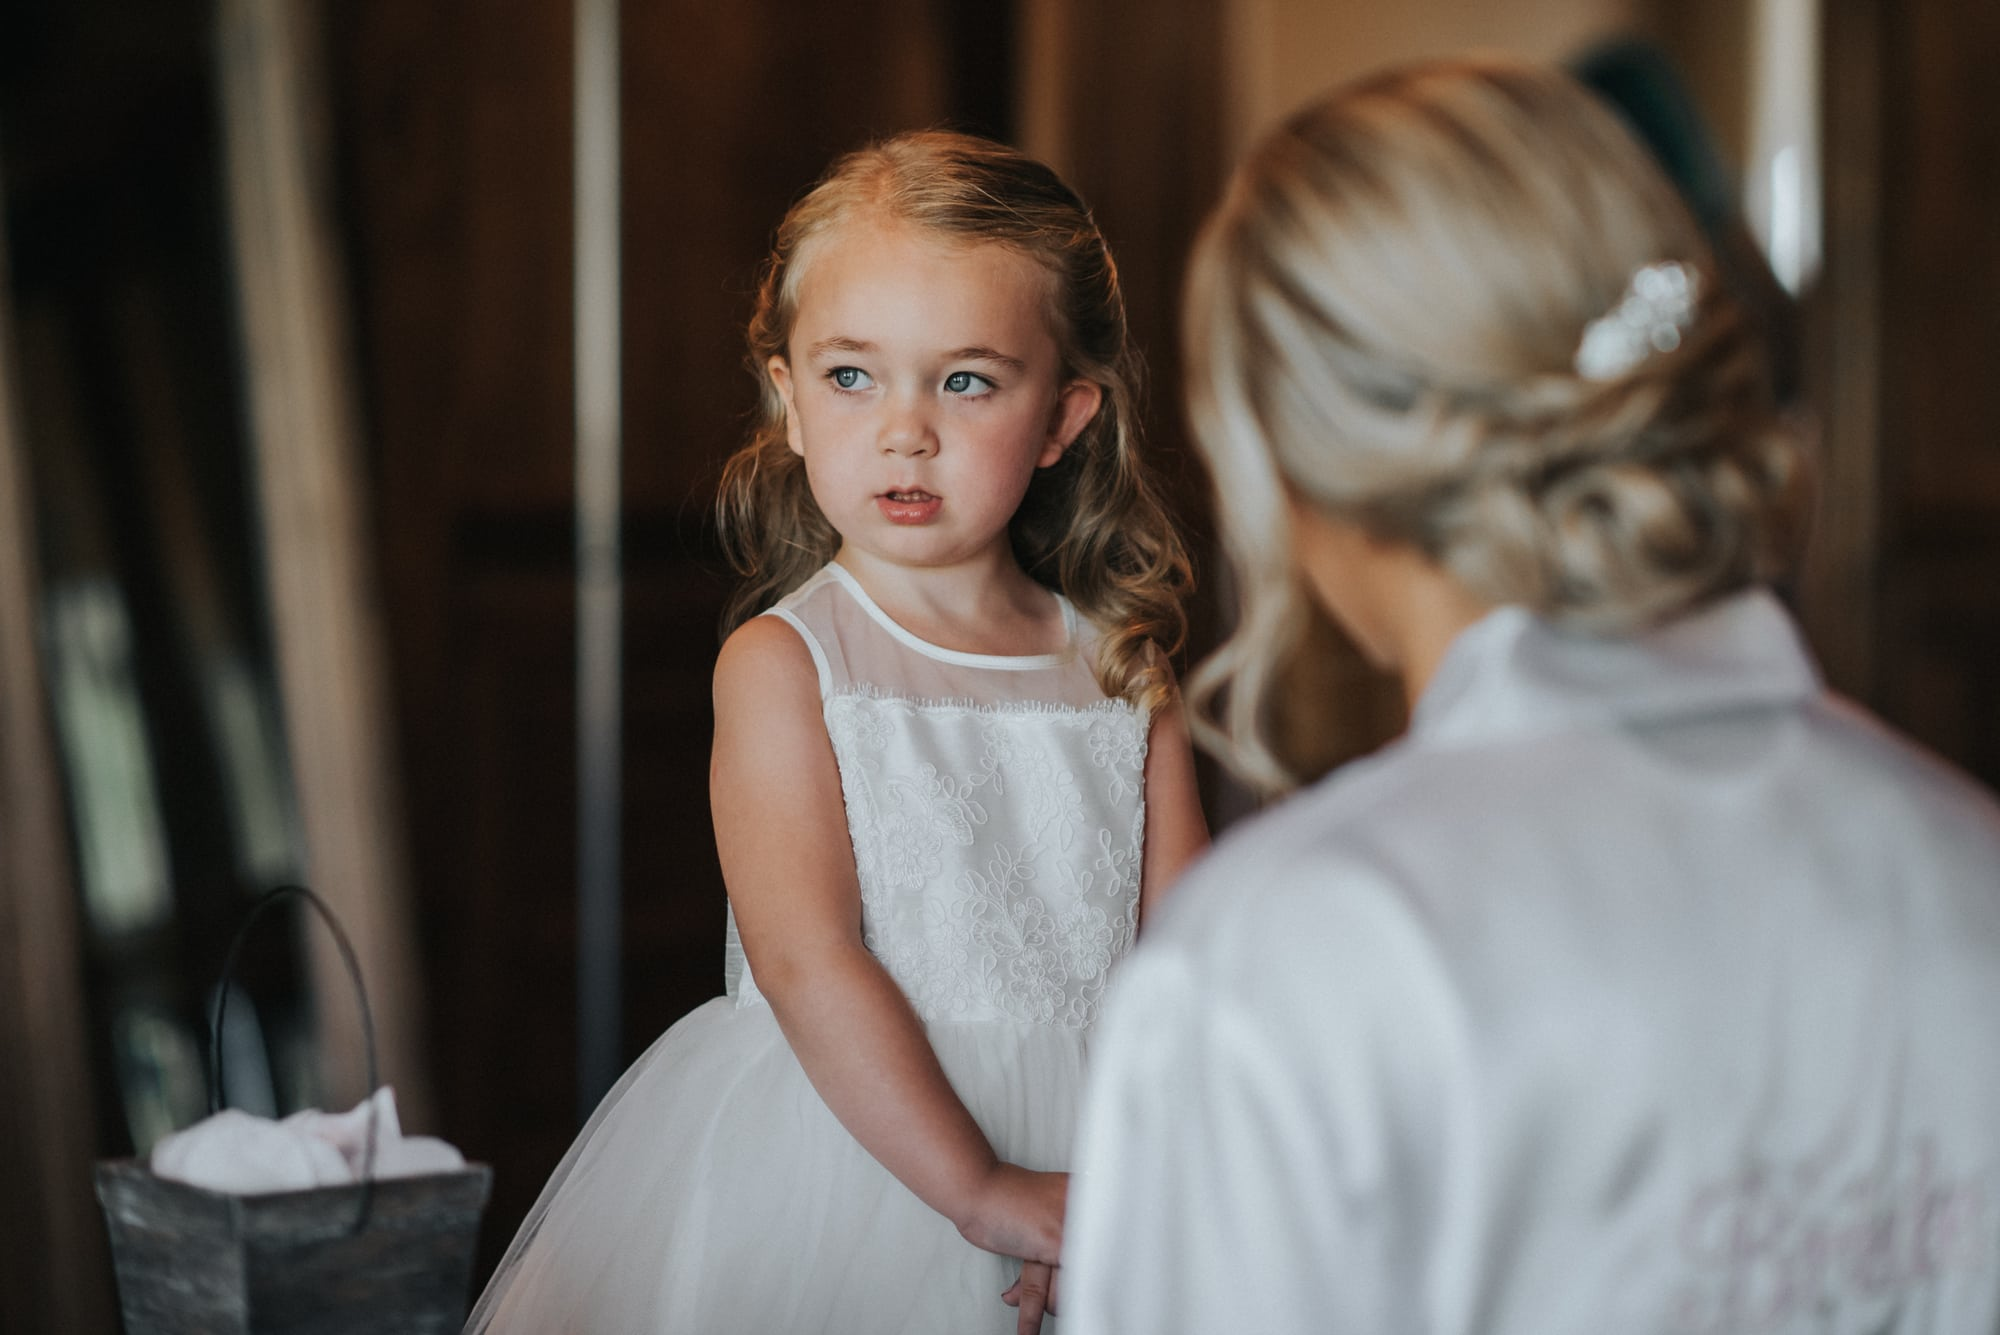 bride helping daughter get ready for wedding